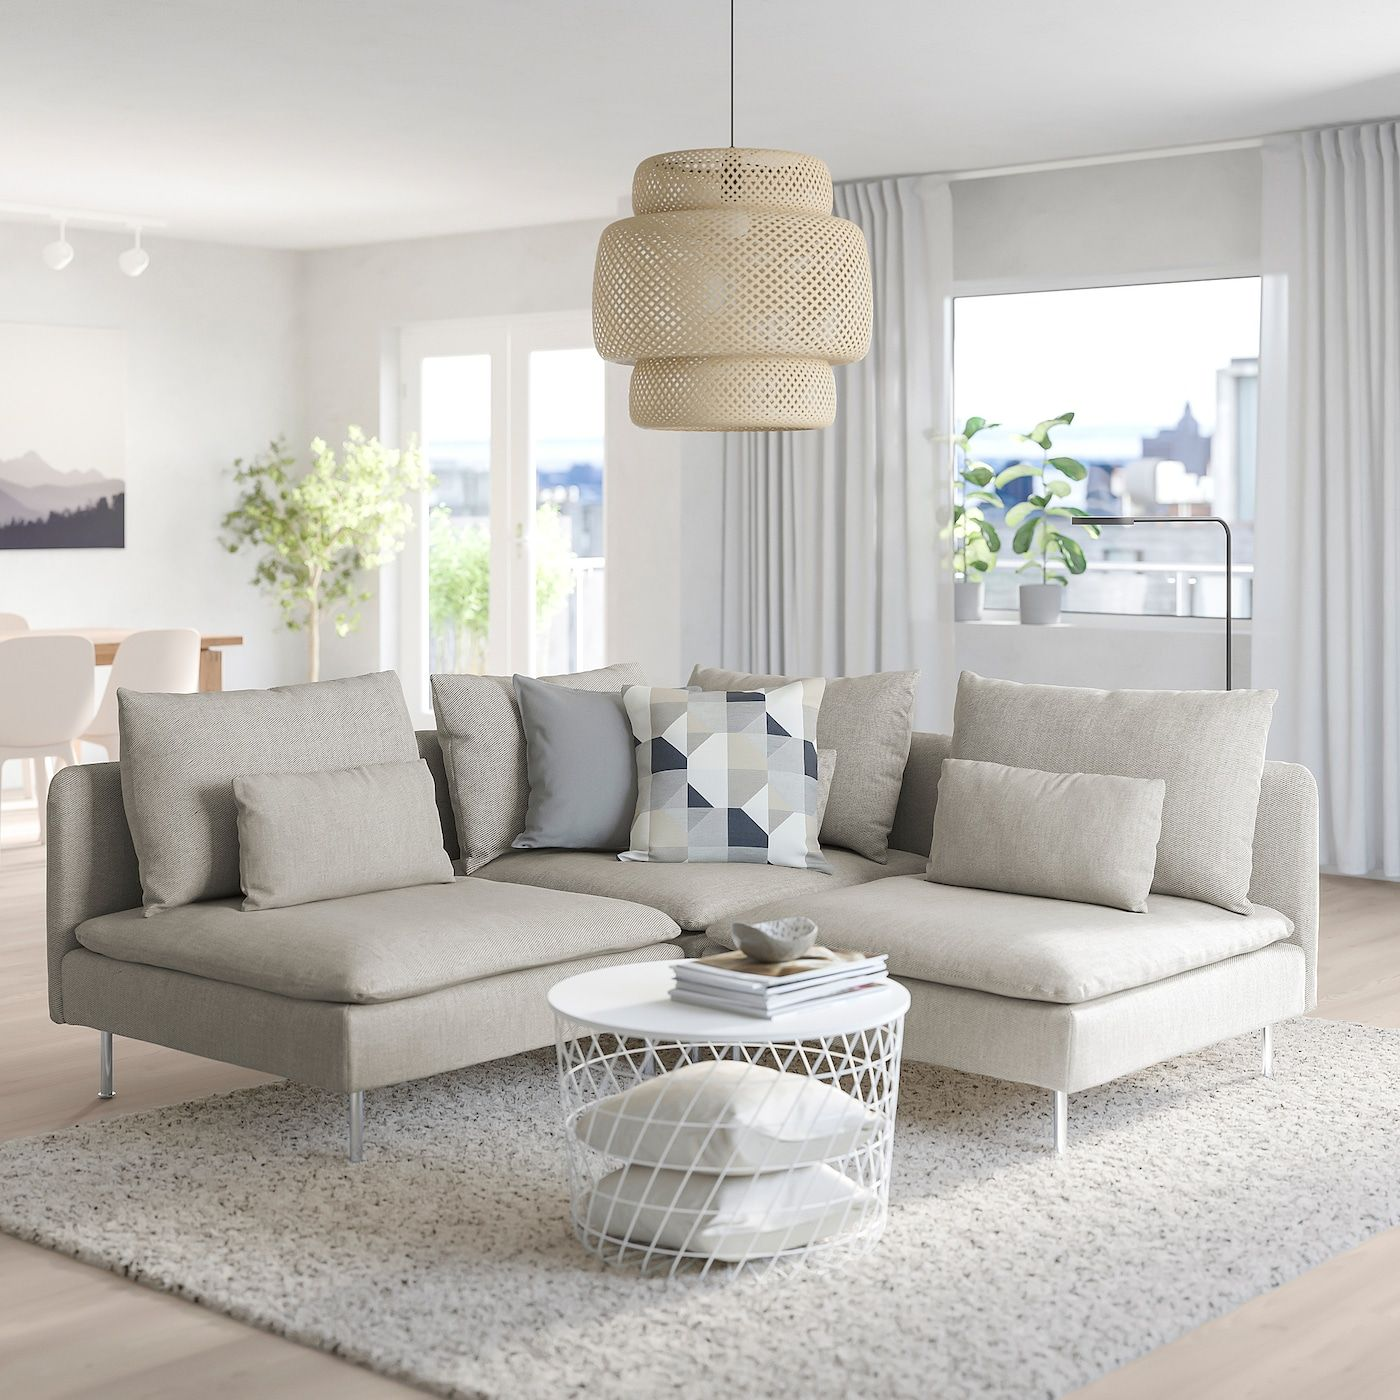 Soderhamn Ecksofa 3 Sitzig Viarp Beige Braun Ikea Osterreich In 2020 Sofa Bed With Chaise Cosy Sofa Sofa Back Cushions